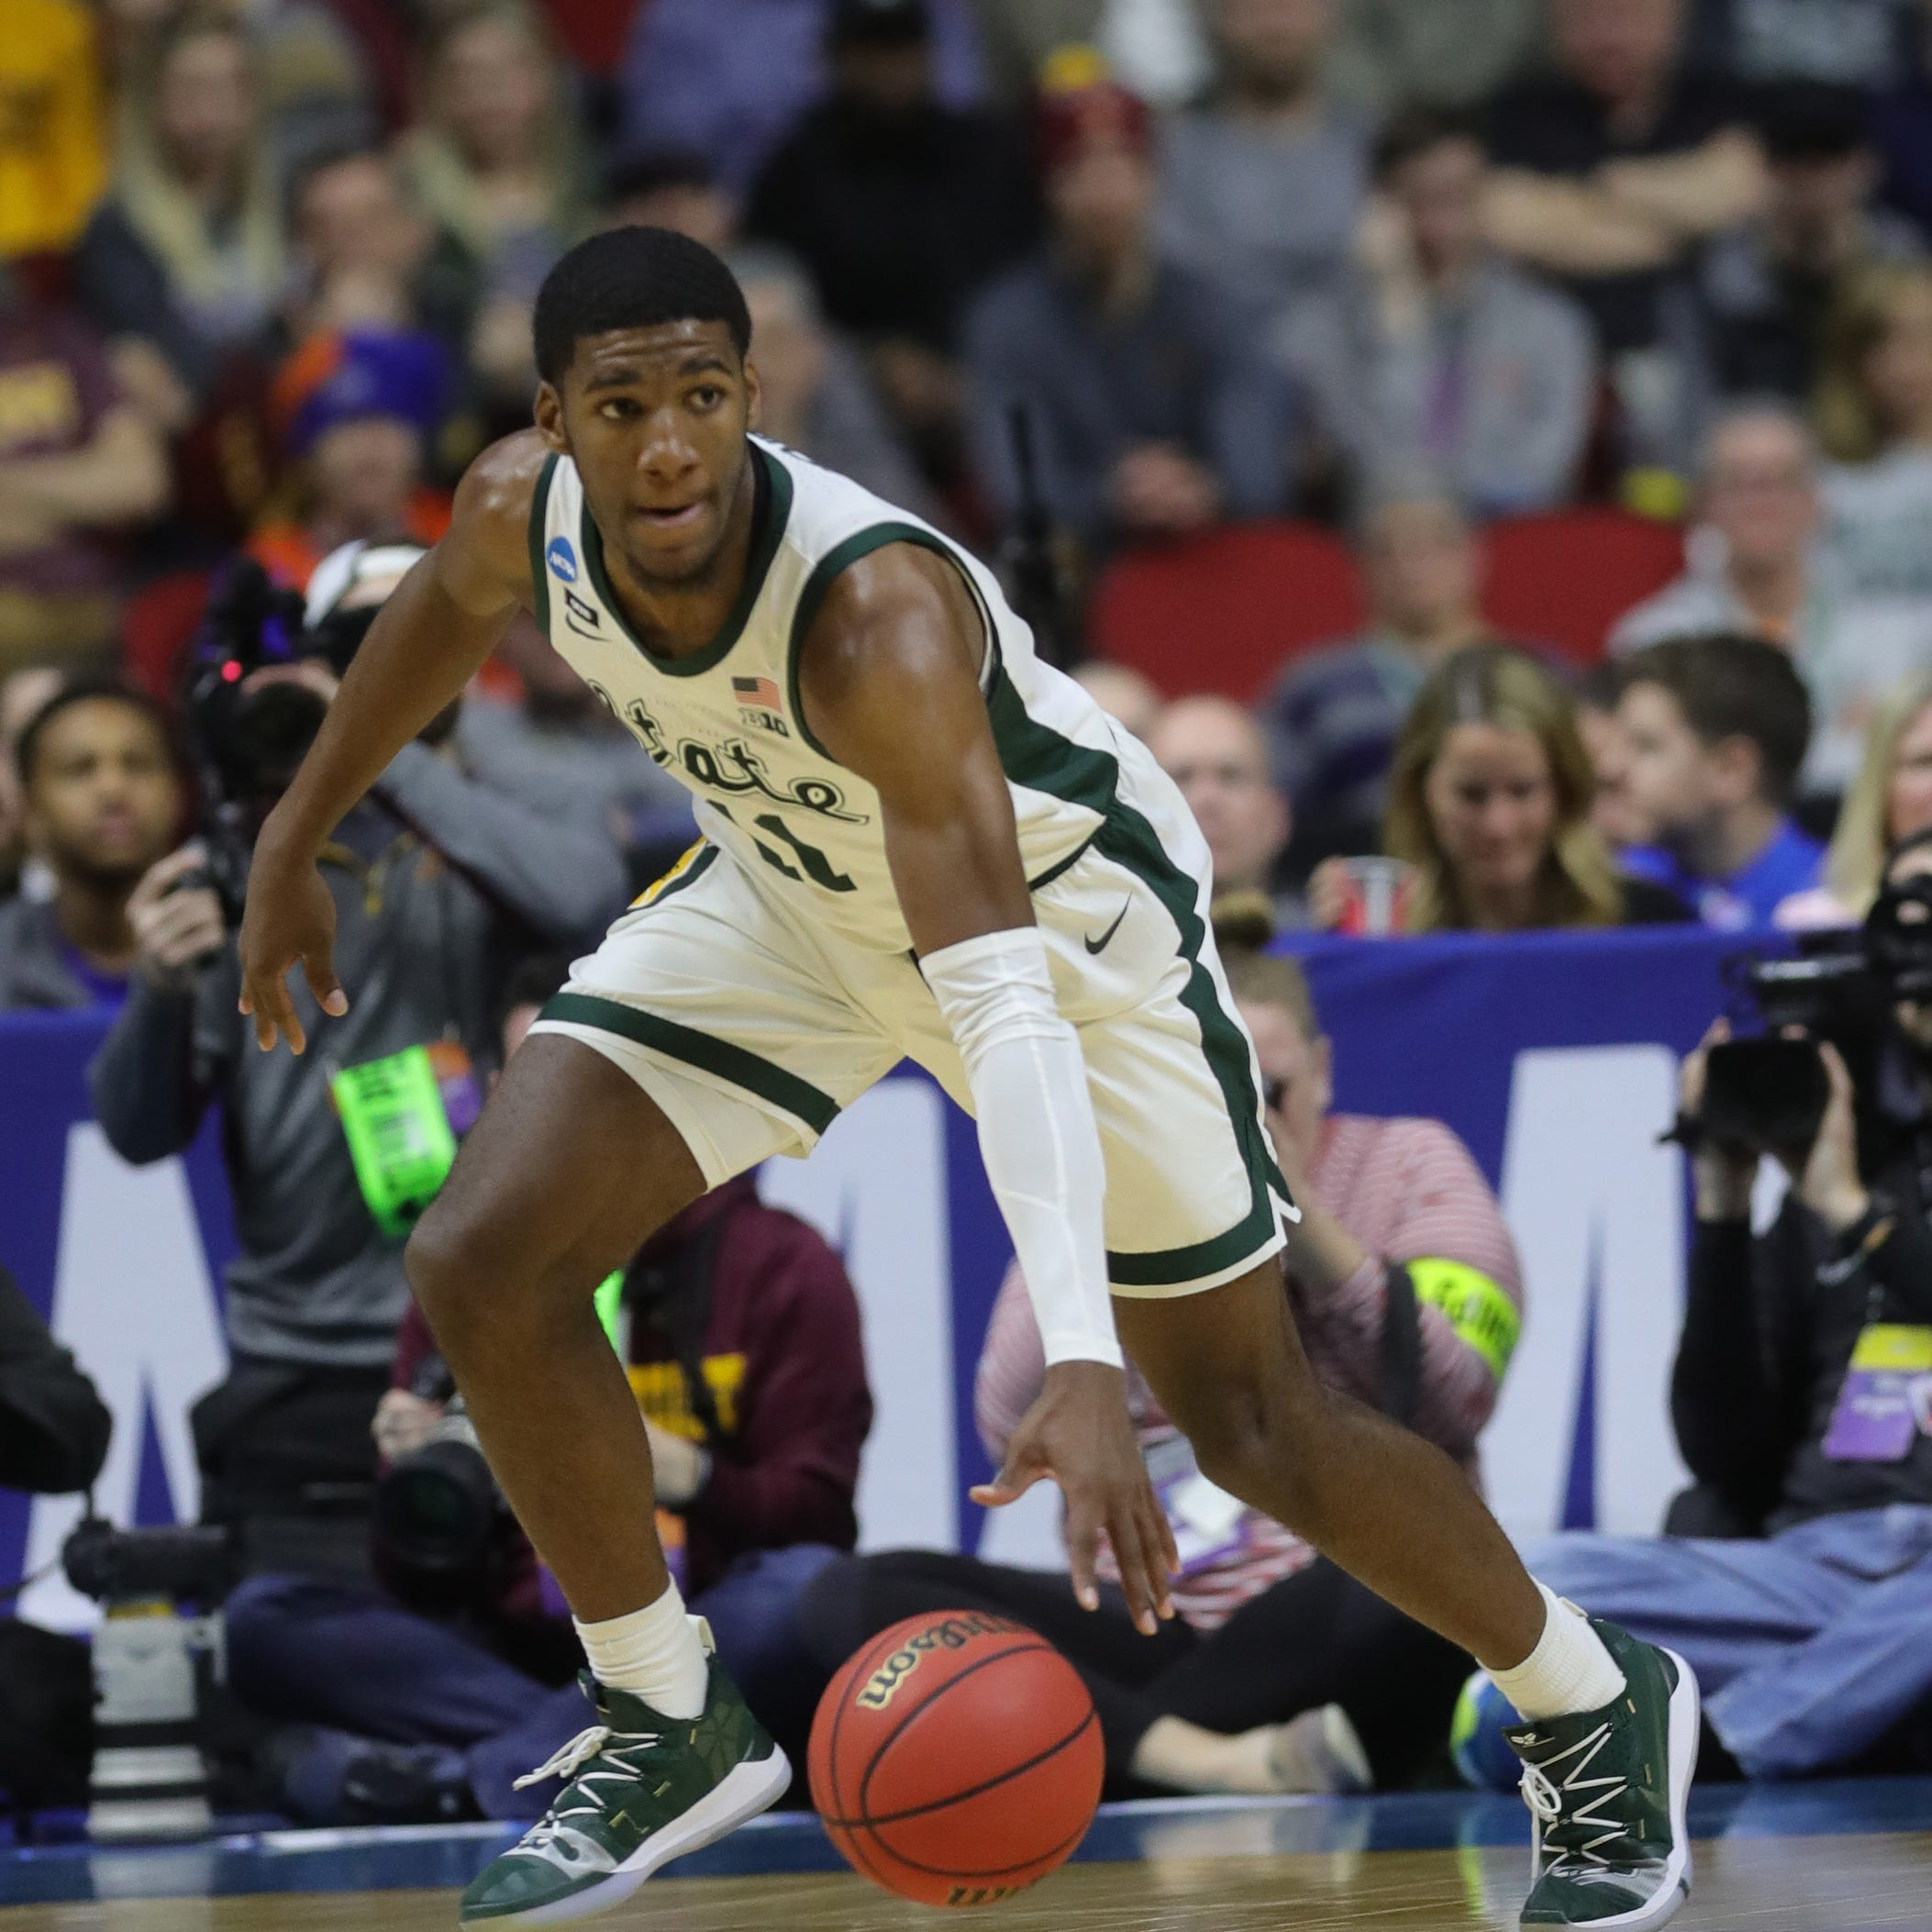 Michigan State basketball's Aaron Henry undeterred after berating